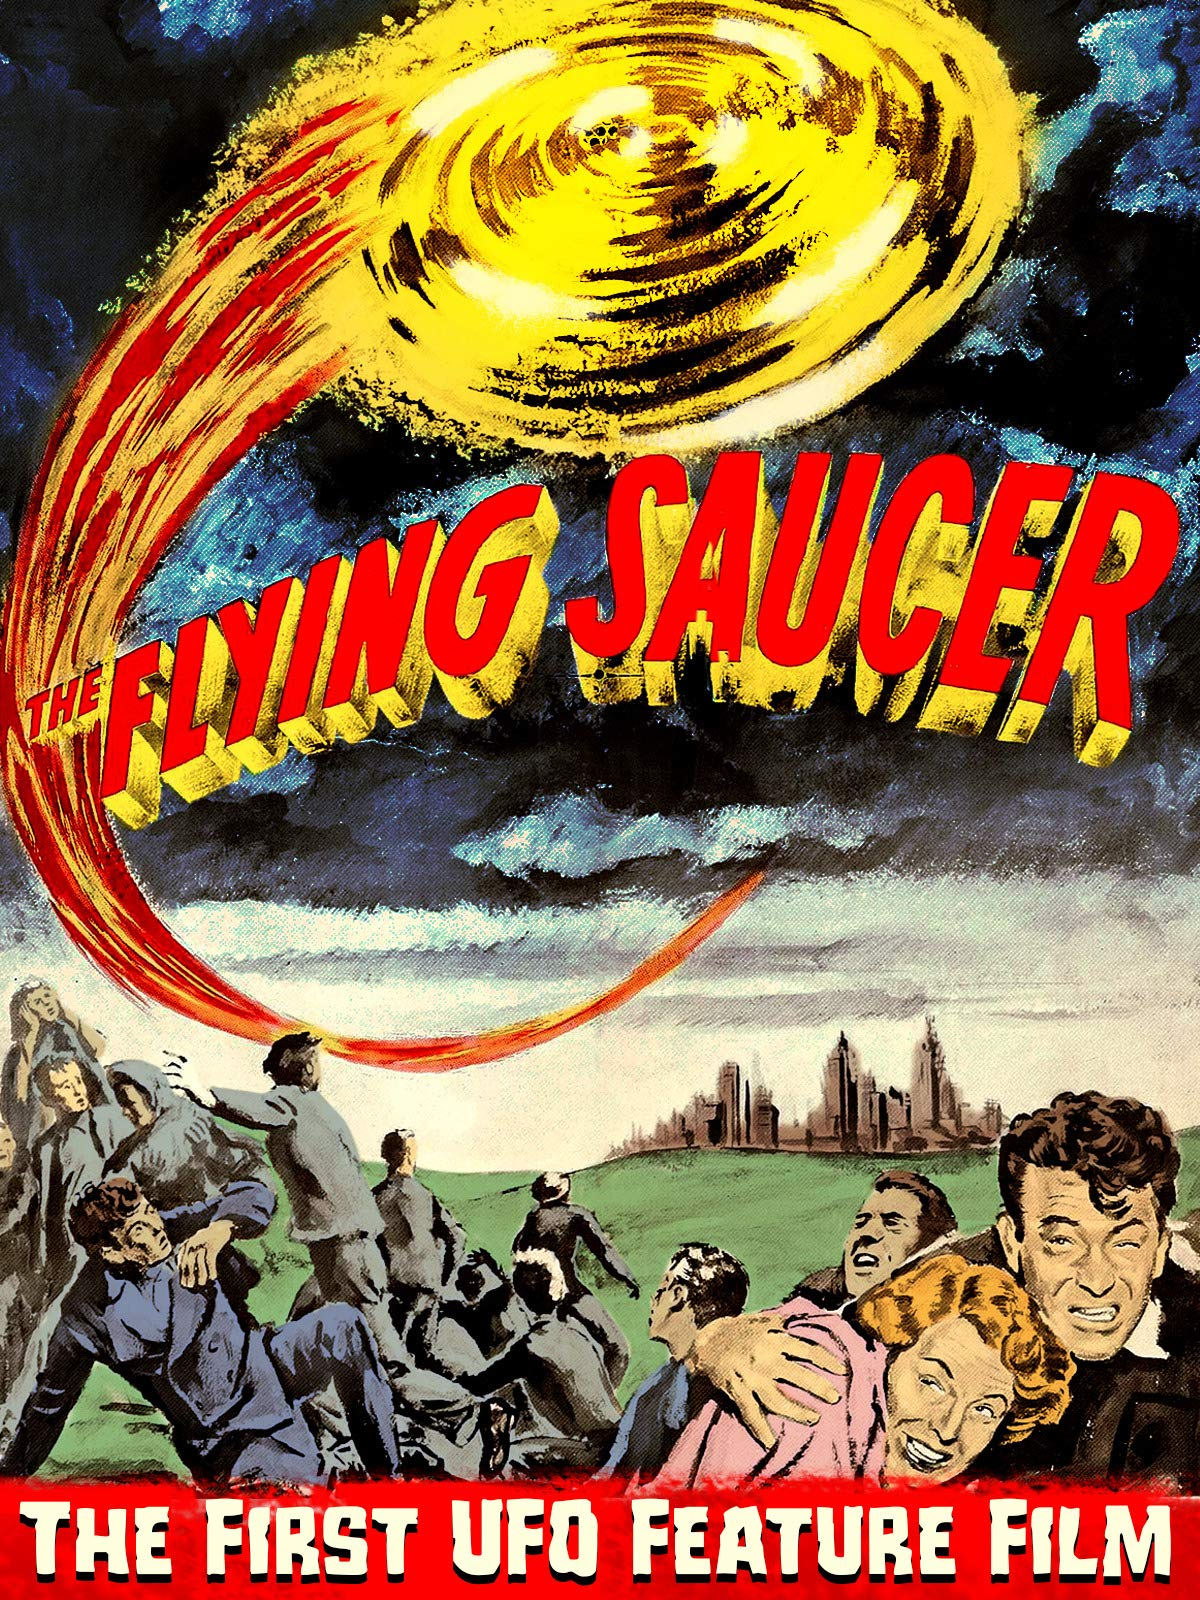 The Flying Saucer - The Frst UFO Feature Film